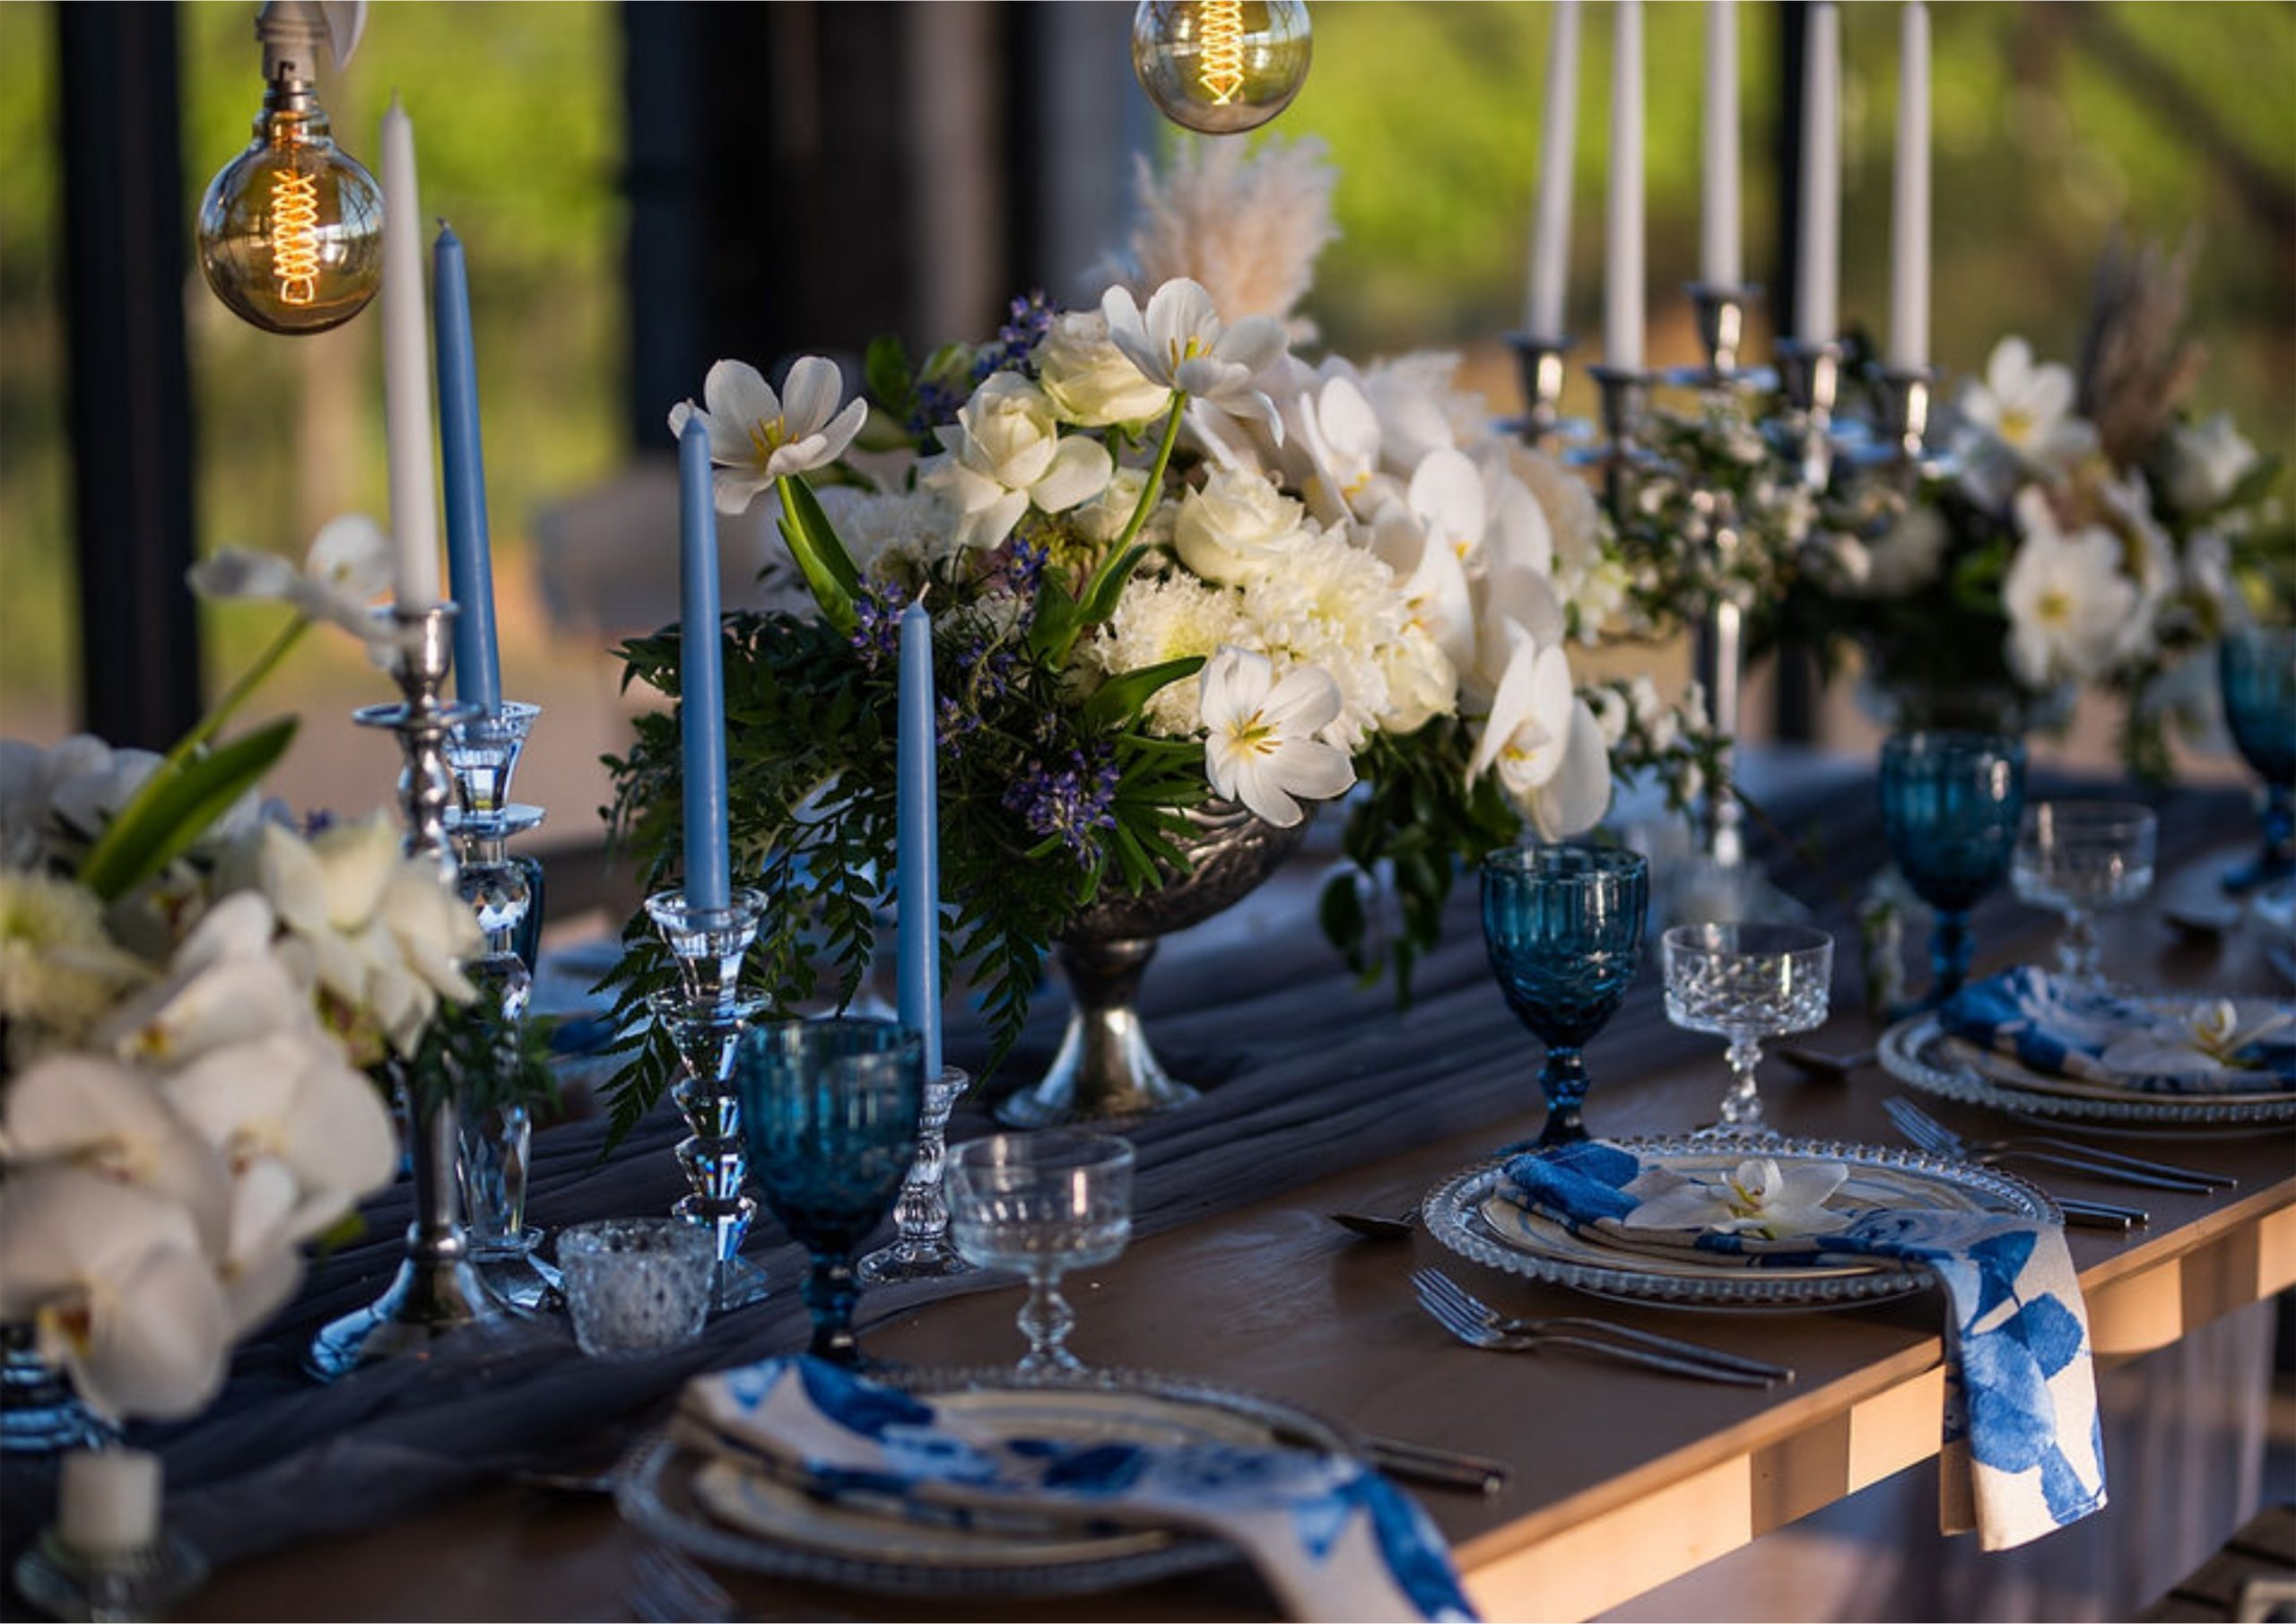 Bruidsgids Wedding Guide My Pretty Vintage Candleholders Table Setting Wedding Decor Events Photography by Gustav Klotz